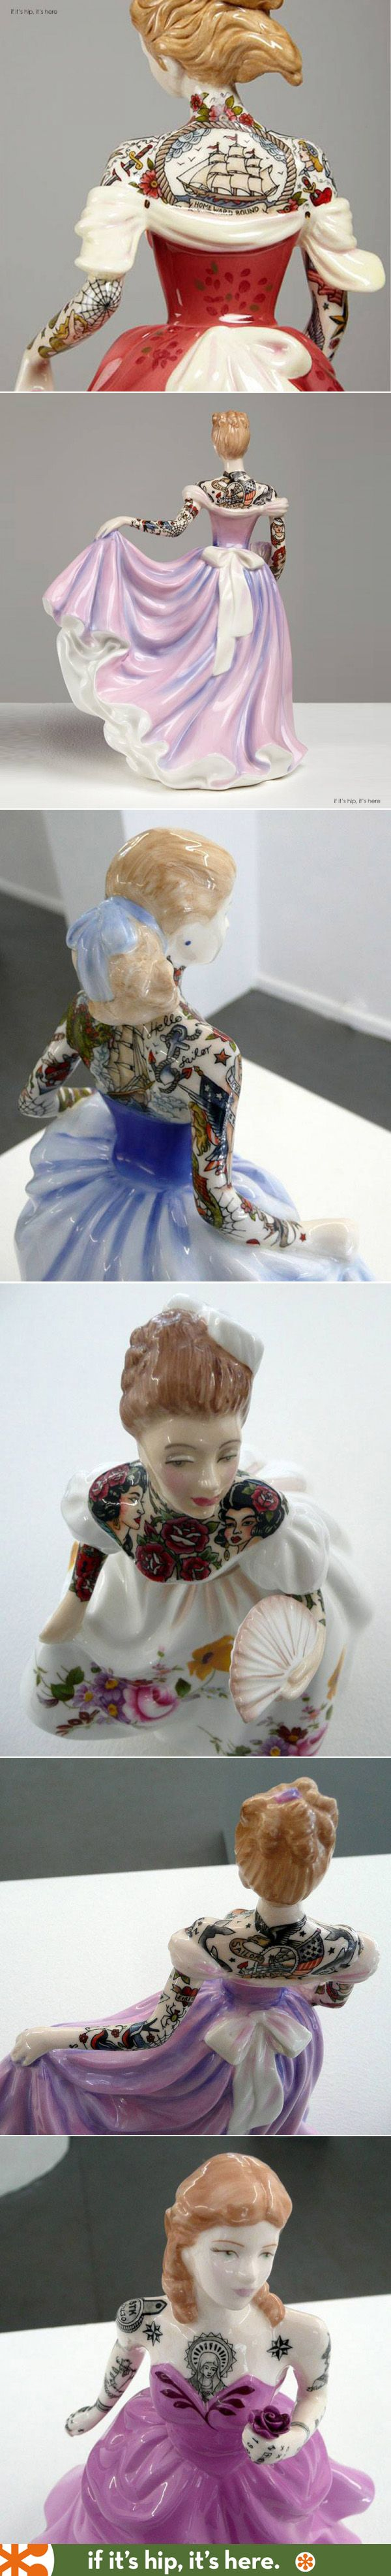 Tattooed Porcelain Figurines by Jessica Harrison.